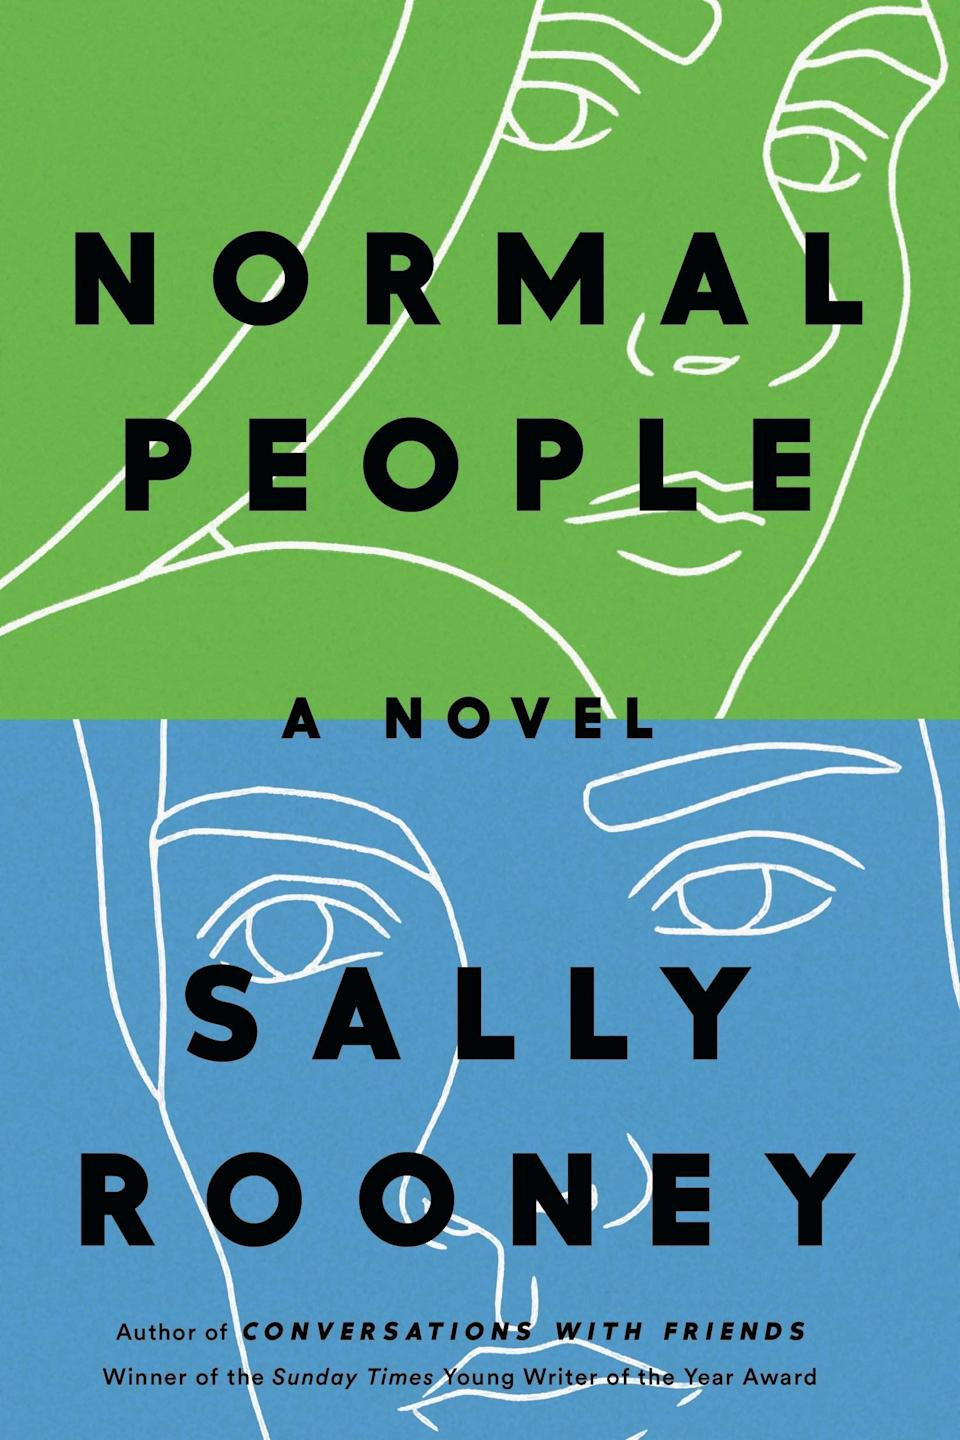 """<em>Normal People</em> author Sally Rooney, 28, has been called the first great <a href=""""https://www.nytimes.com/2018/08/31/world/europe/sally-rooney-ireland.html"""" rel=""""nofollow noopener"""" target=""""_blank"""" data-ylk=""""slk:millennial writer"""" class=""""link rapid-noclick-resp"""">millennial writer</a>. She's amassed an army of cool-girl fans like <em>Sweetbitter</em> author <a href=""""https://www.penguinrandomhouse.com/books/592625/normal-people-by-sally-rooney/9781984822178/"""" rel=""""nofollow noopener"""" target=""""_blank"""" data-ylk=""""slk:Stephanie Danler"""" class=""""link rapid-noclick-resp"""">Stephanie Danler</a> and model <a href=""""https://twitter.com/emrata/status/1115668120688046080"""" rel=""""nofollow noopener"""" target=""""_blank"""" data-ylk=""""slk:Emily Ratajkowski"""" class=""""link rapid-noclick-resp"""">Emily Ratajkowski</a>. And <a href=""""https://www.npr.org/2019/04/09/711377704/personal-demons-and-class-differences-complicate-love-in-normal-people"""" rel=""""nofollow noopener"""" target=""""_blank"""" data-ylk=""""slk:the critics"""" class=""""link rapid-noclick-resp"""">the critics</a> adore her. <em>Normal People</em> lives up to the praise. The book centers on classmates Marianne and Connell, who despite their different personalities and circumstances can't seem to leave one another alone. You'll read it in one gulp—and love every second of it."""